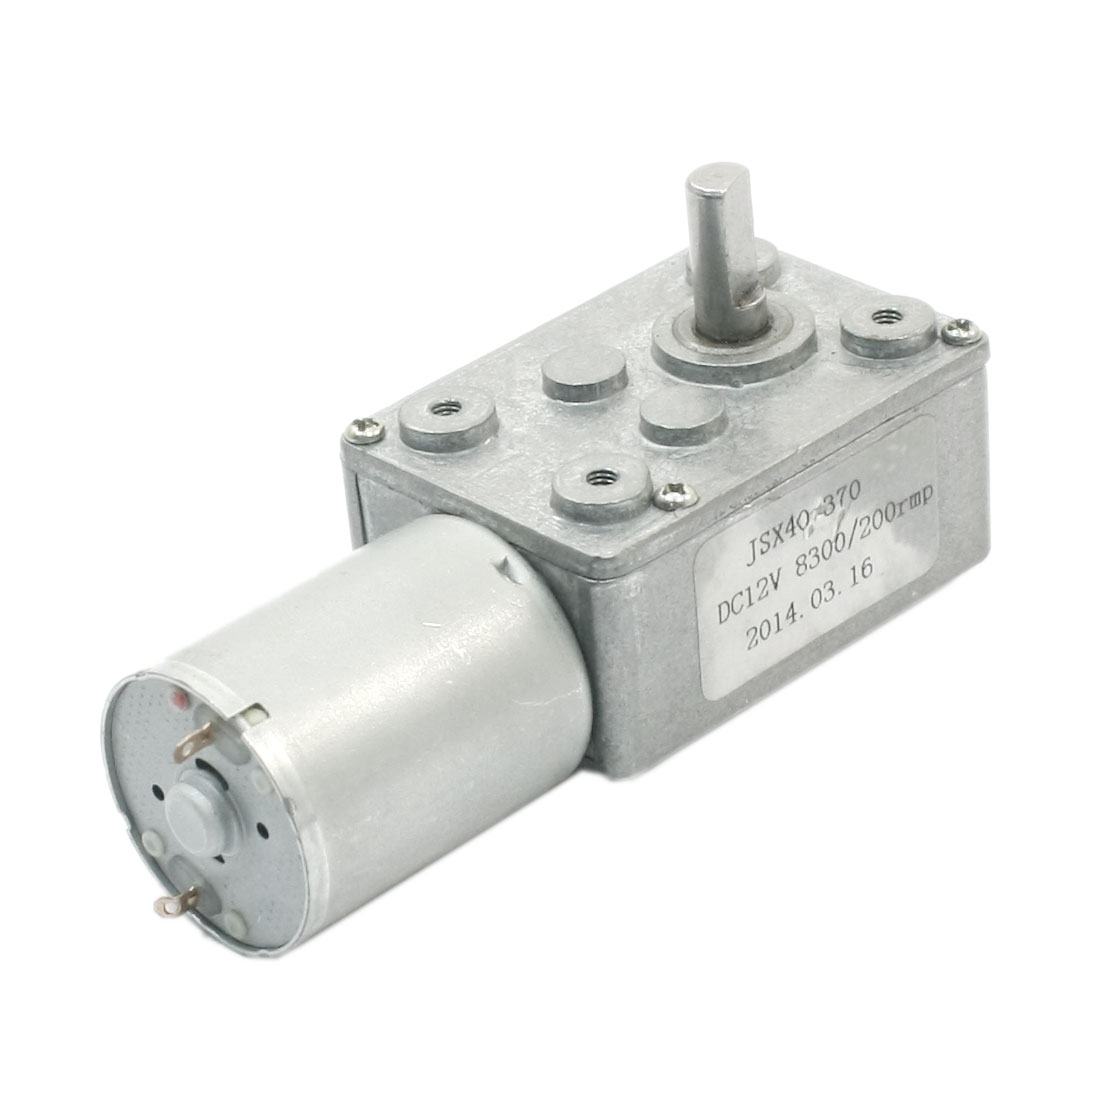 DC 12V Connecting Reduction Ratio 8300RPM 200RPM Rotary Speed Reducer Self-locking High Torque Worm Geared Box Motor